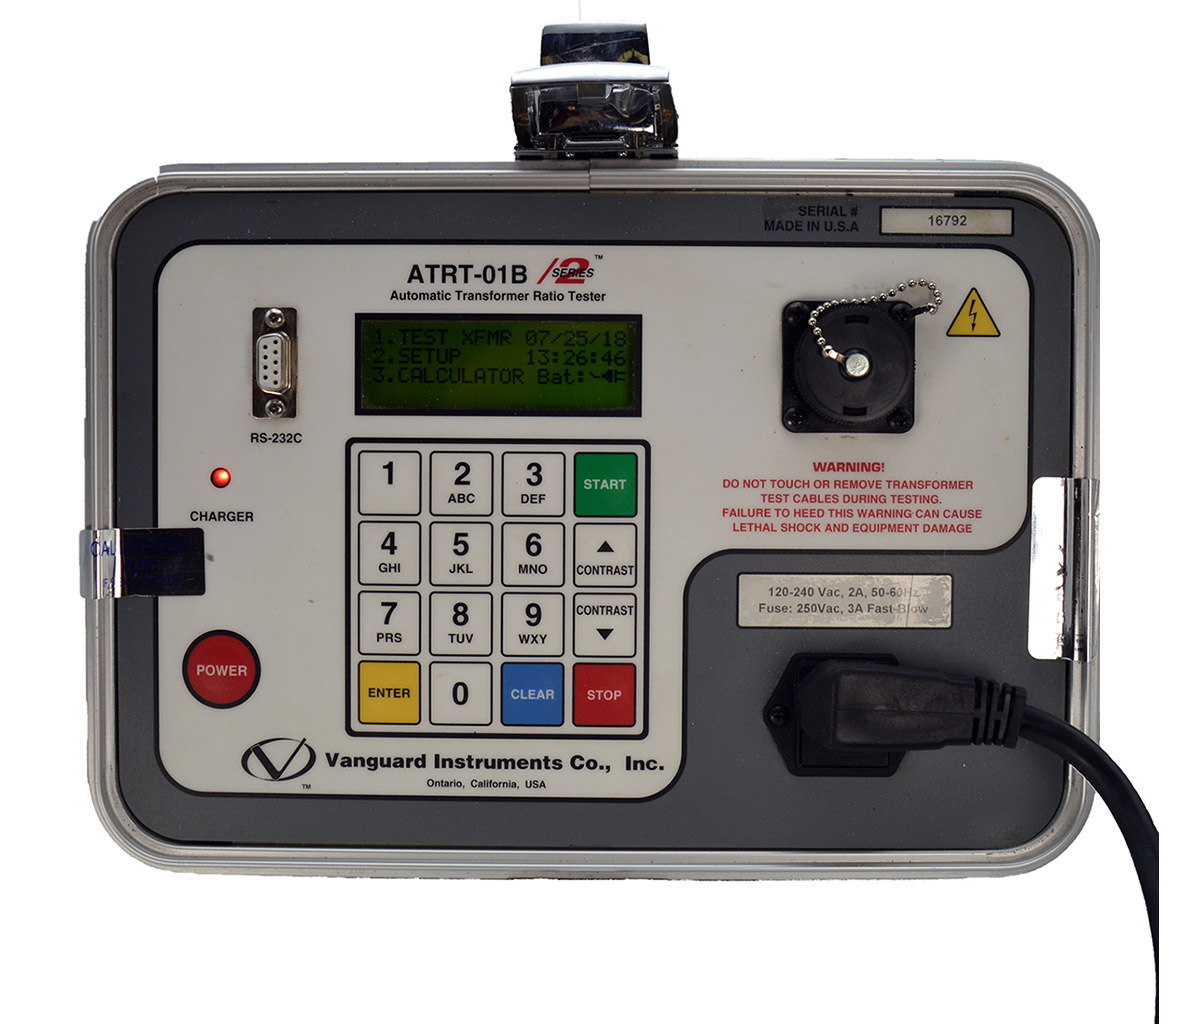 Vanguard - ATRT-01B S2 Transformer Turns Ratio Tester